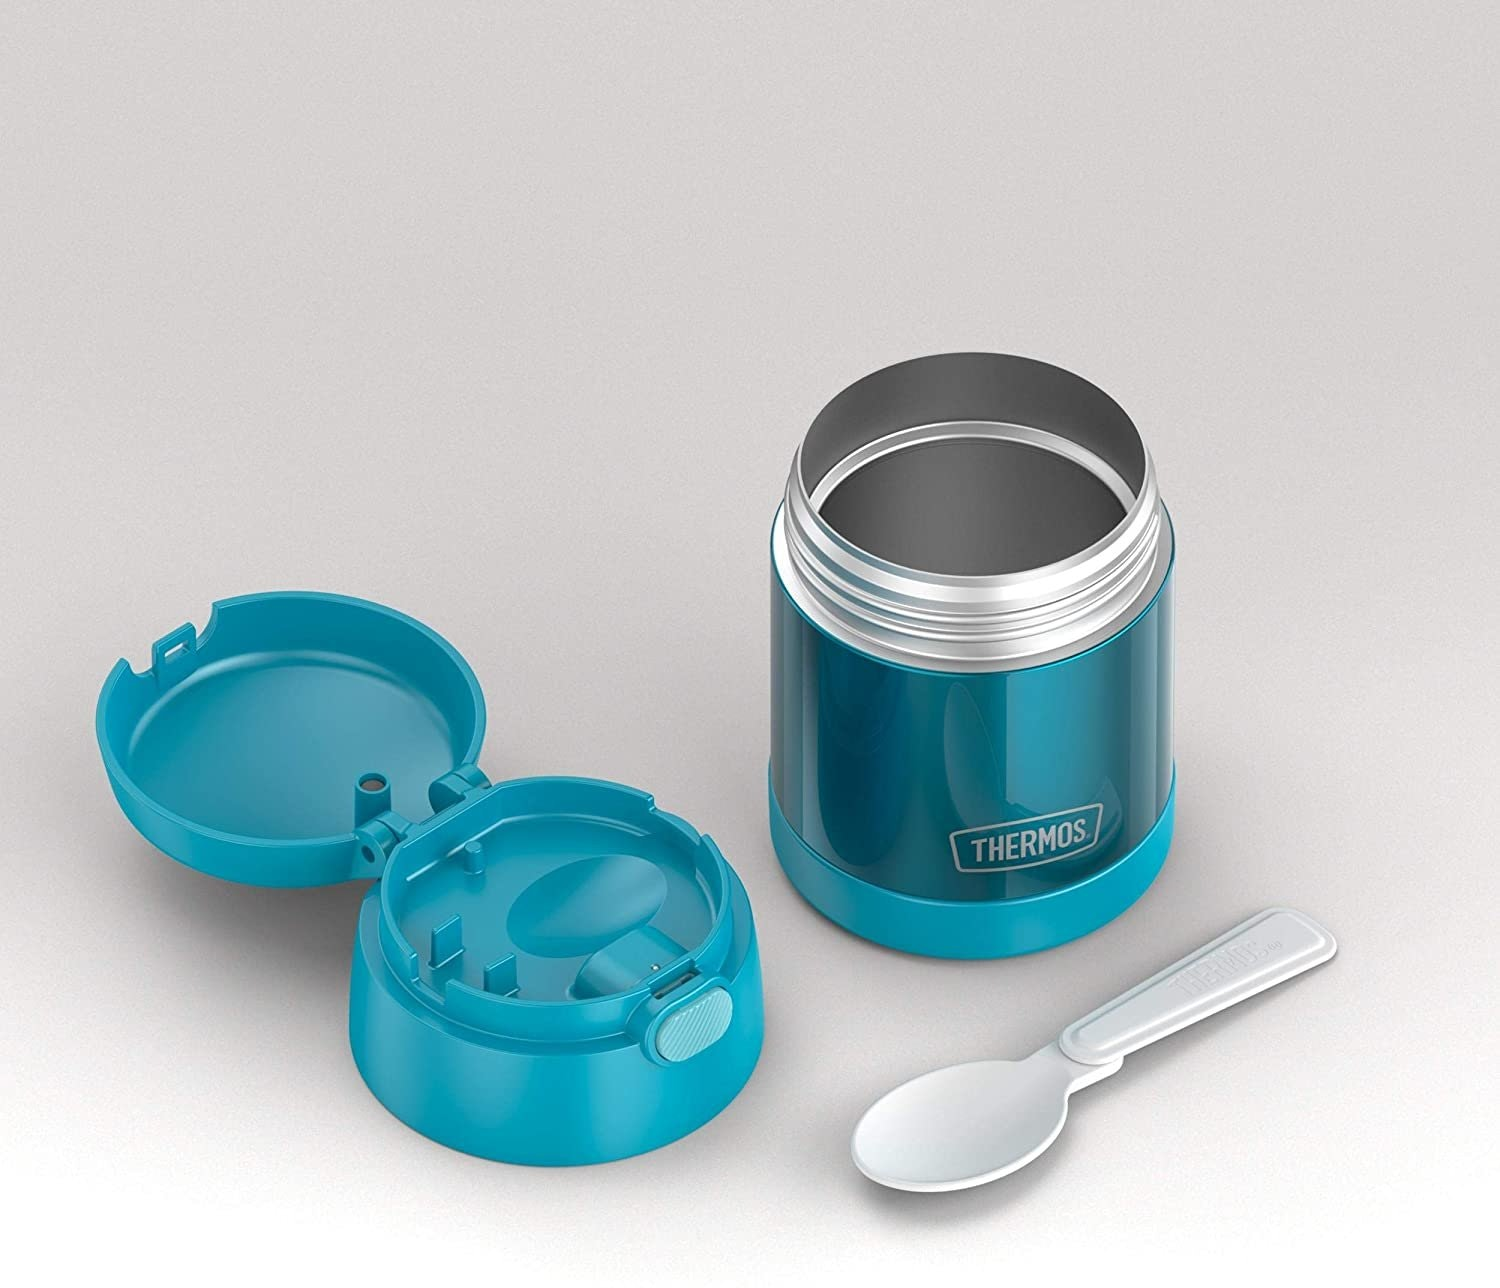 Thermos Funtainer 10 Ounce Stainless Steel Vacuum Insulated Kids Food Jar With Folding Spoon